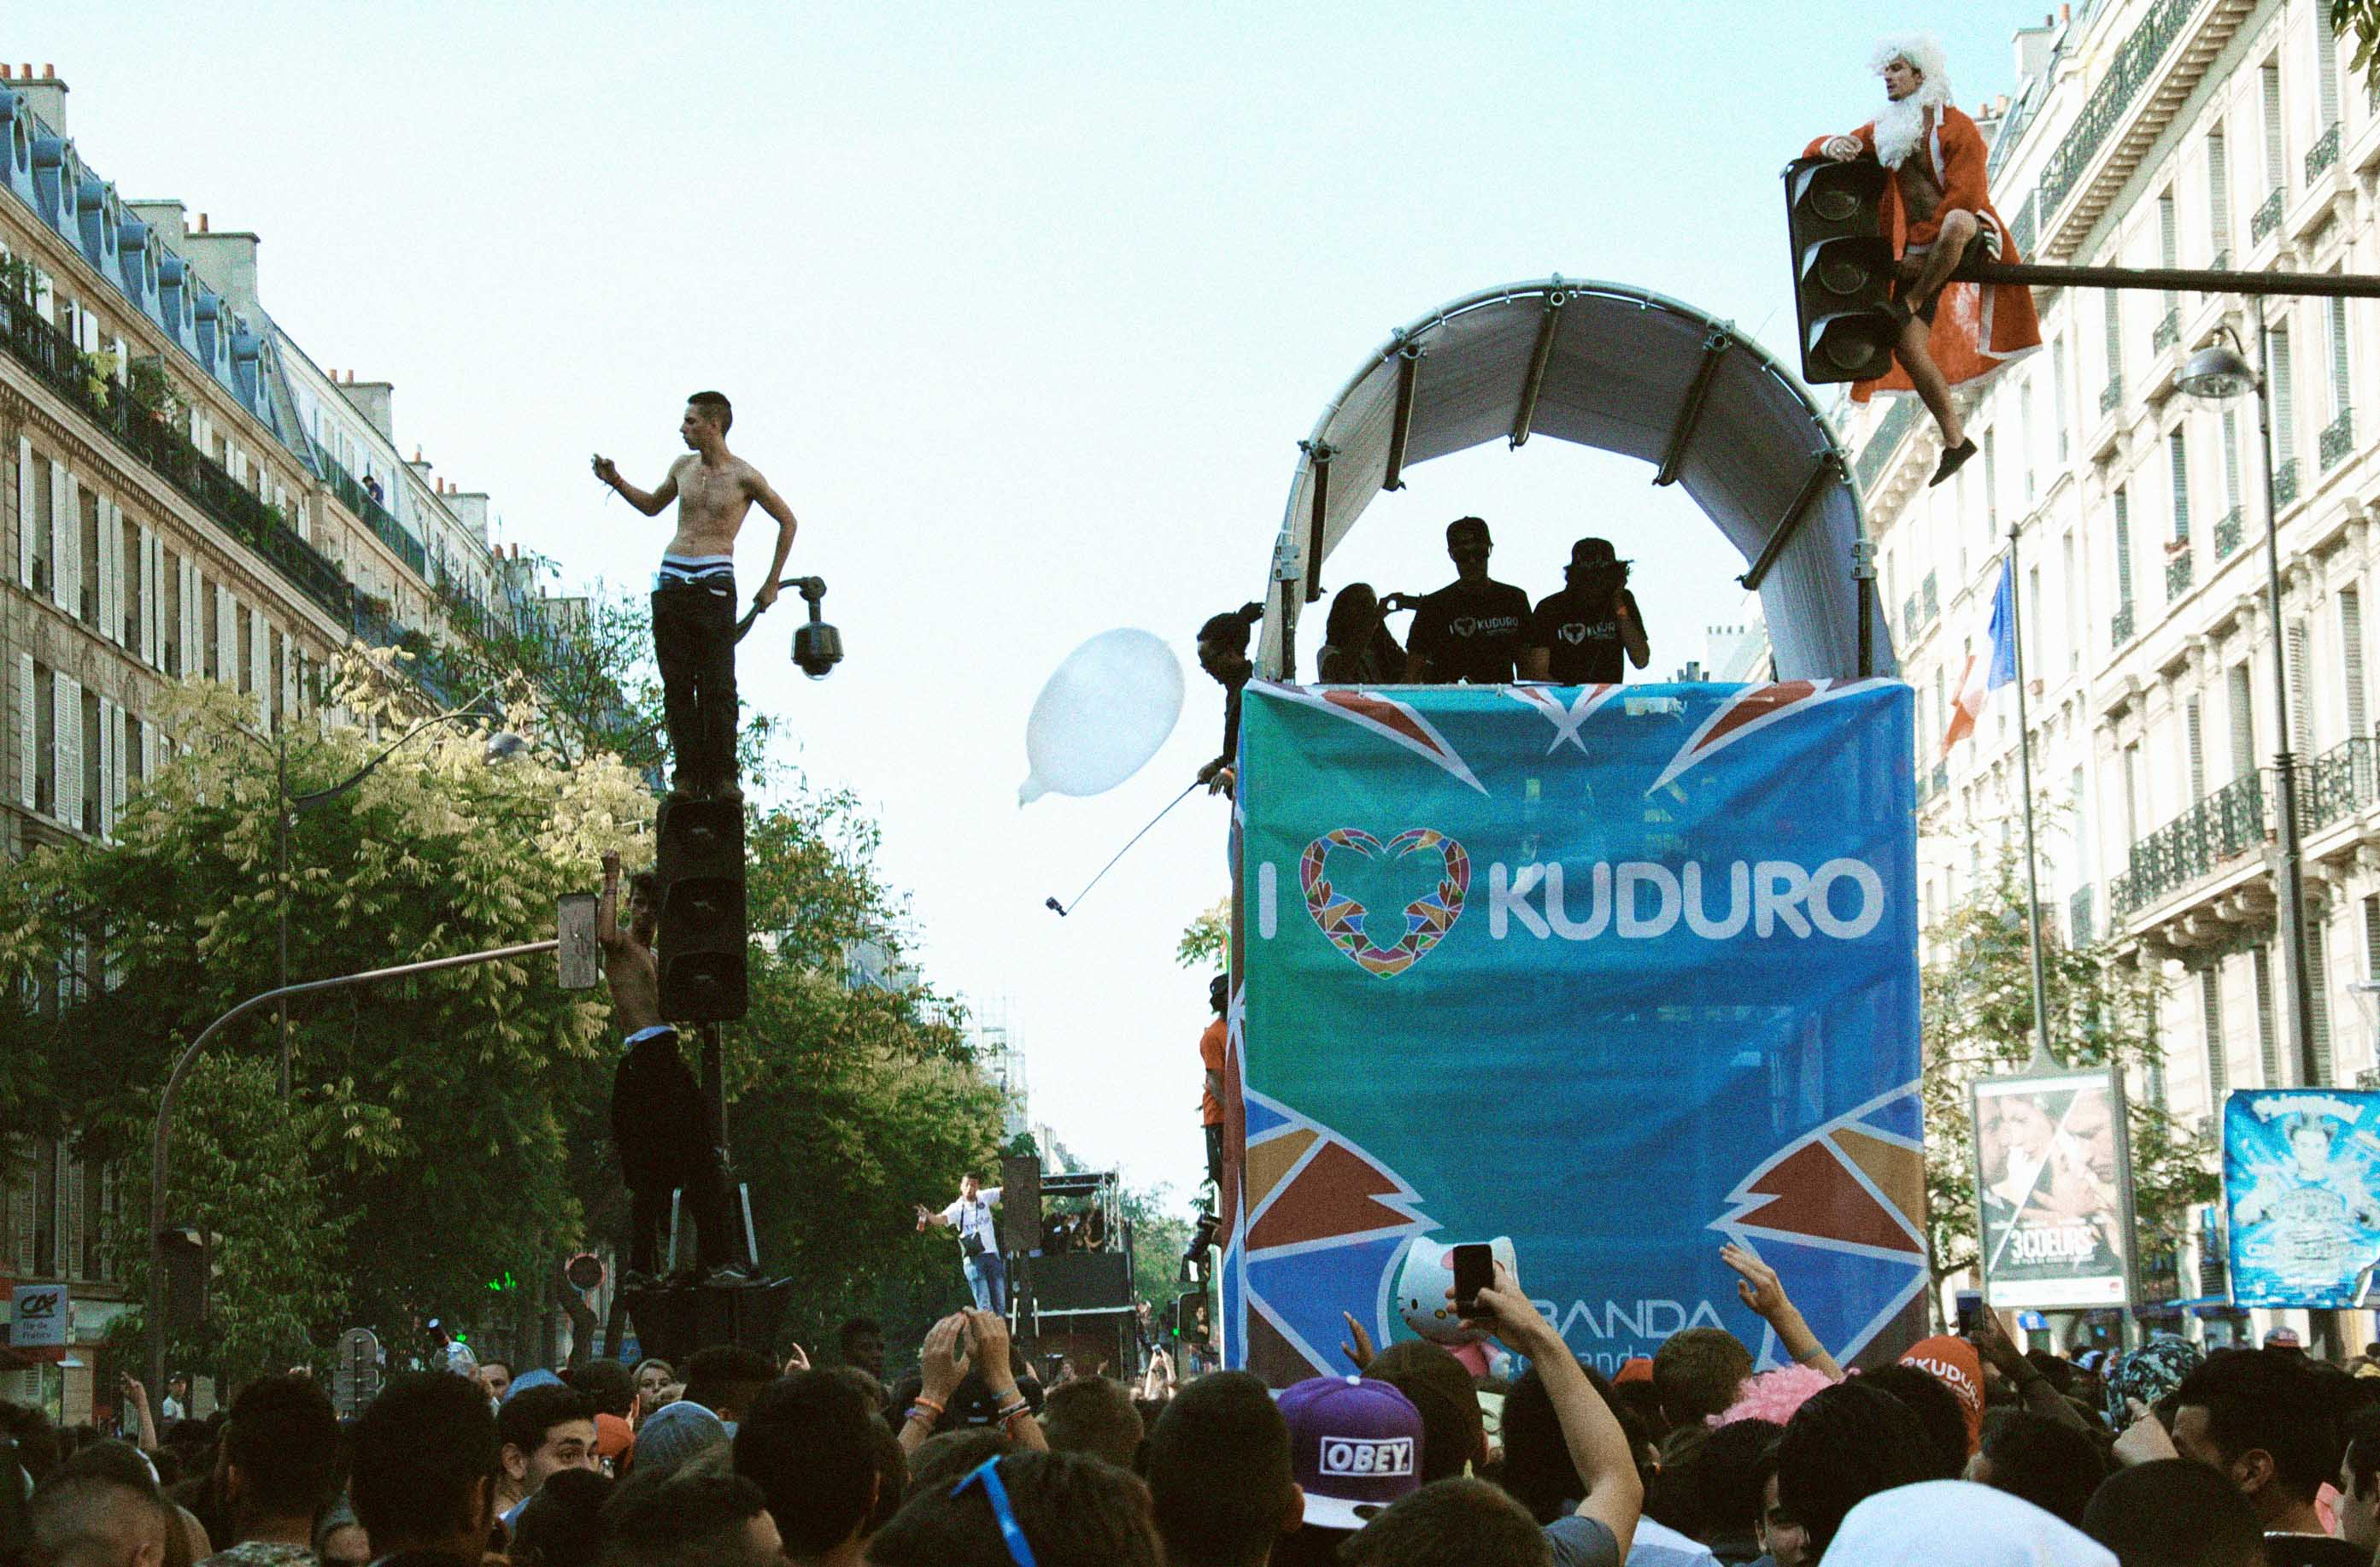 TECHNOPARADE 3